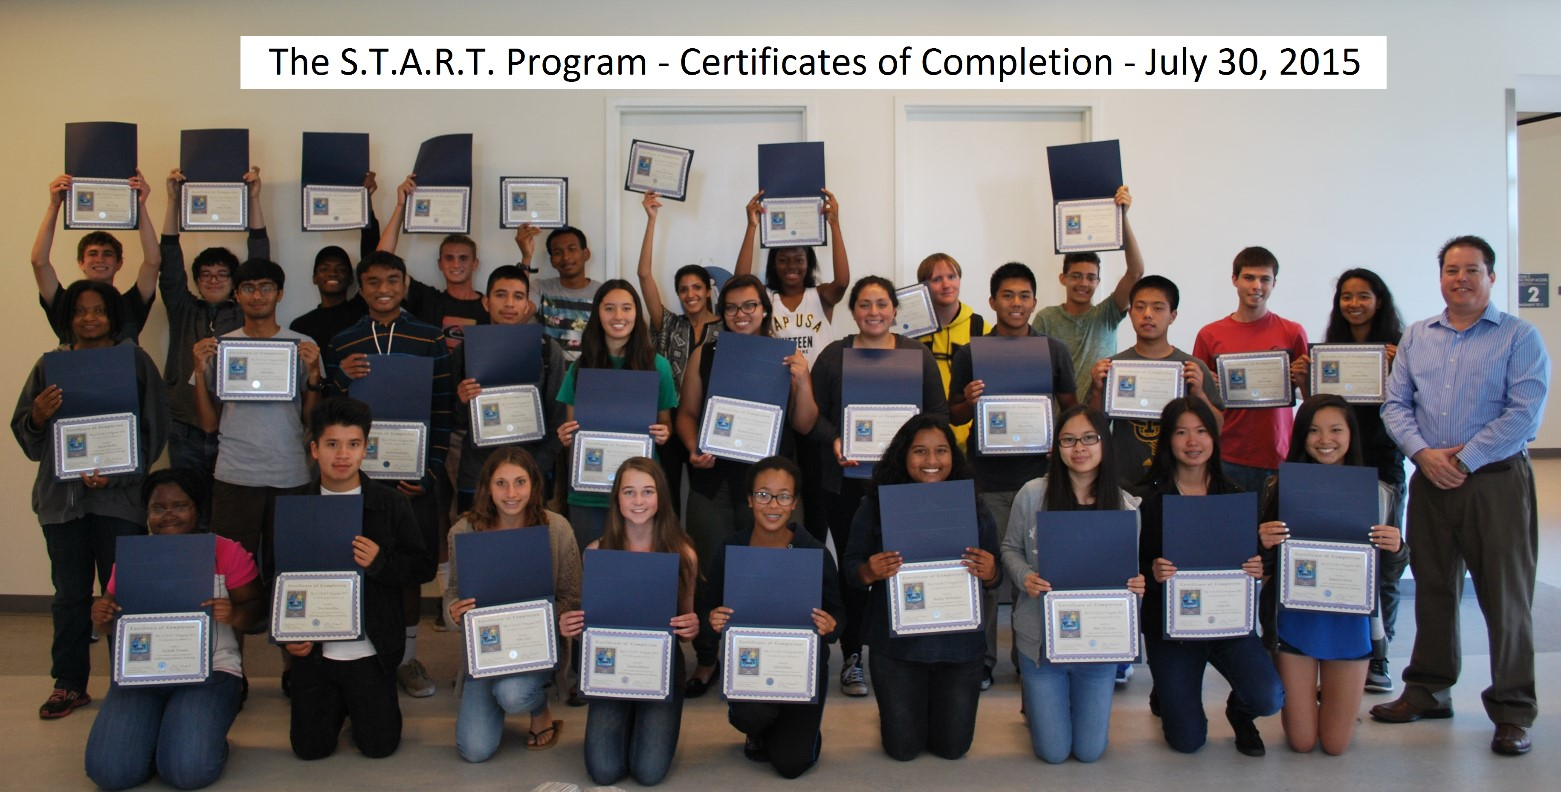 START Program 2015 - Certificates of Completion